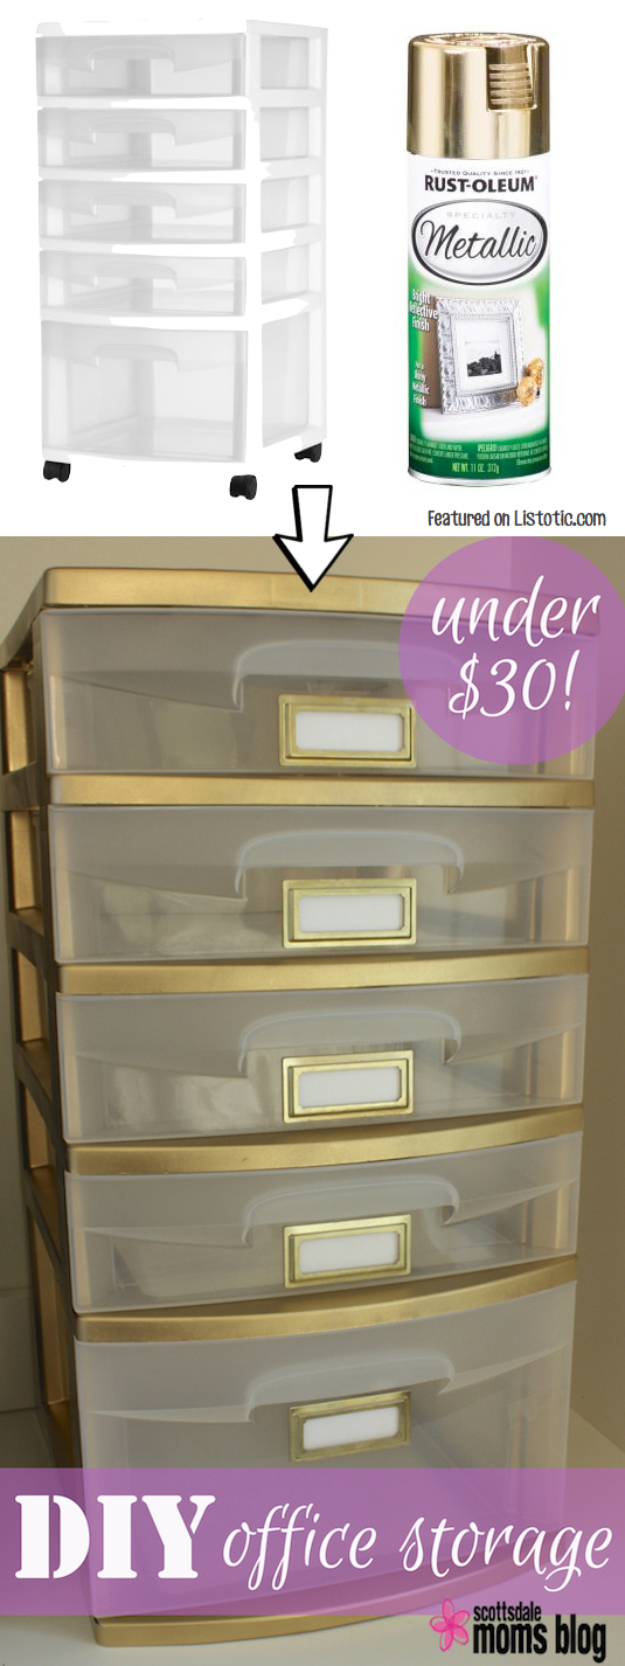 33 Cool DIYs With Spray Paint - DIY Office Storage - Easy Spray Paint Decor, Fun Do It Yourself Spray Paint Ideas, Cool Spray Paint Projects To Try, Upcycled And Repurposed, Restore Old Items With Spray Paint